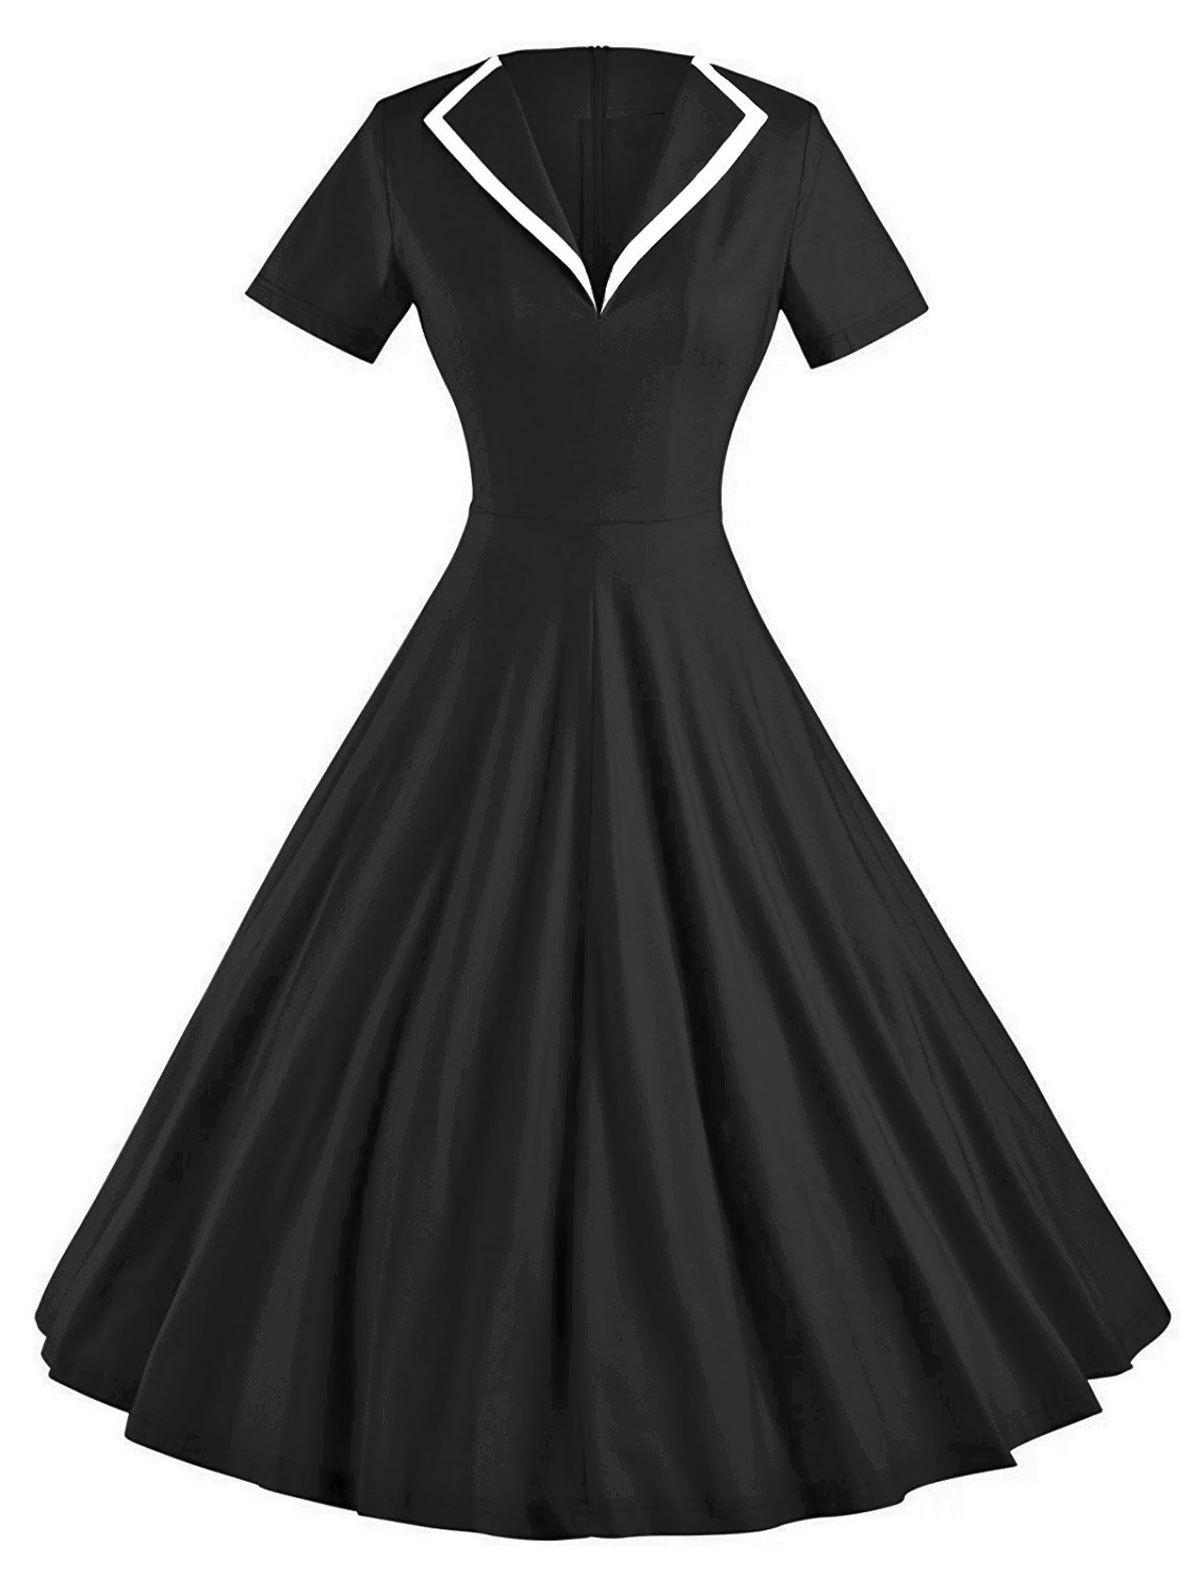 Best Vintage Skate Party Pin Up Dress